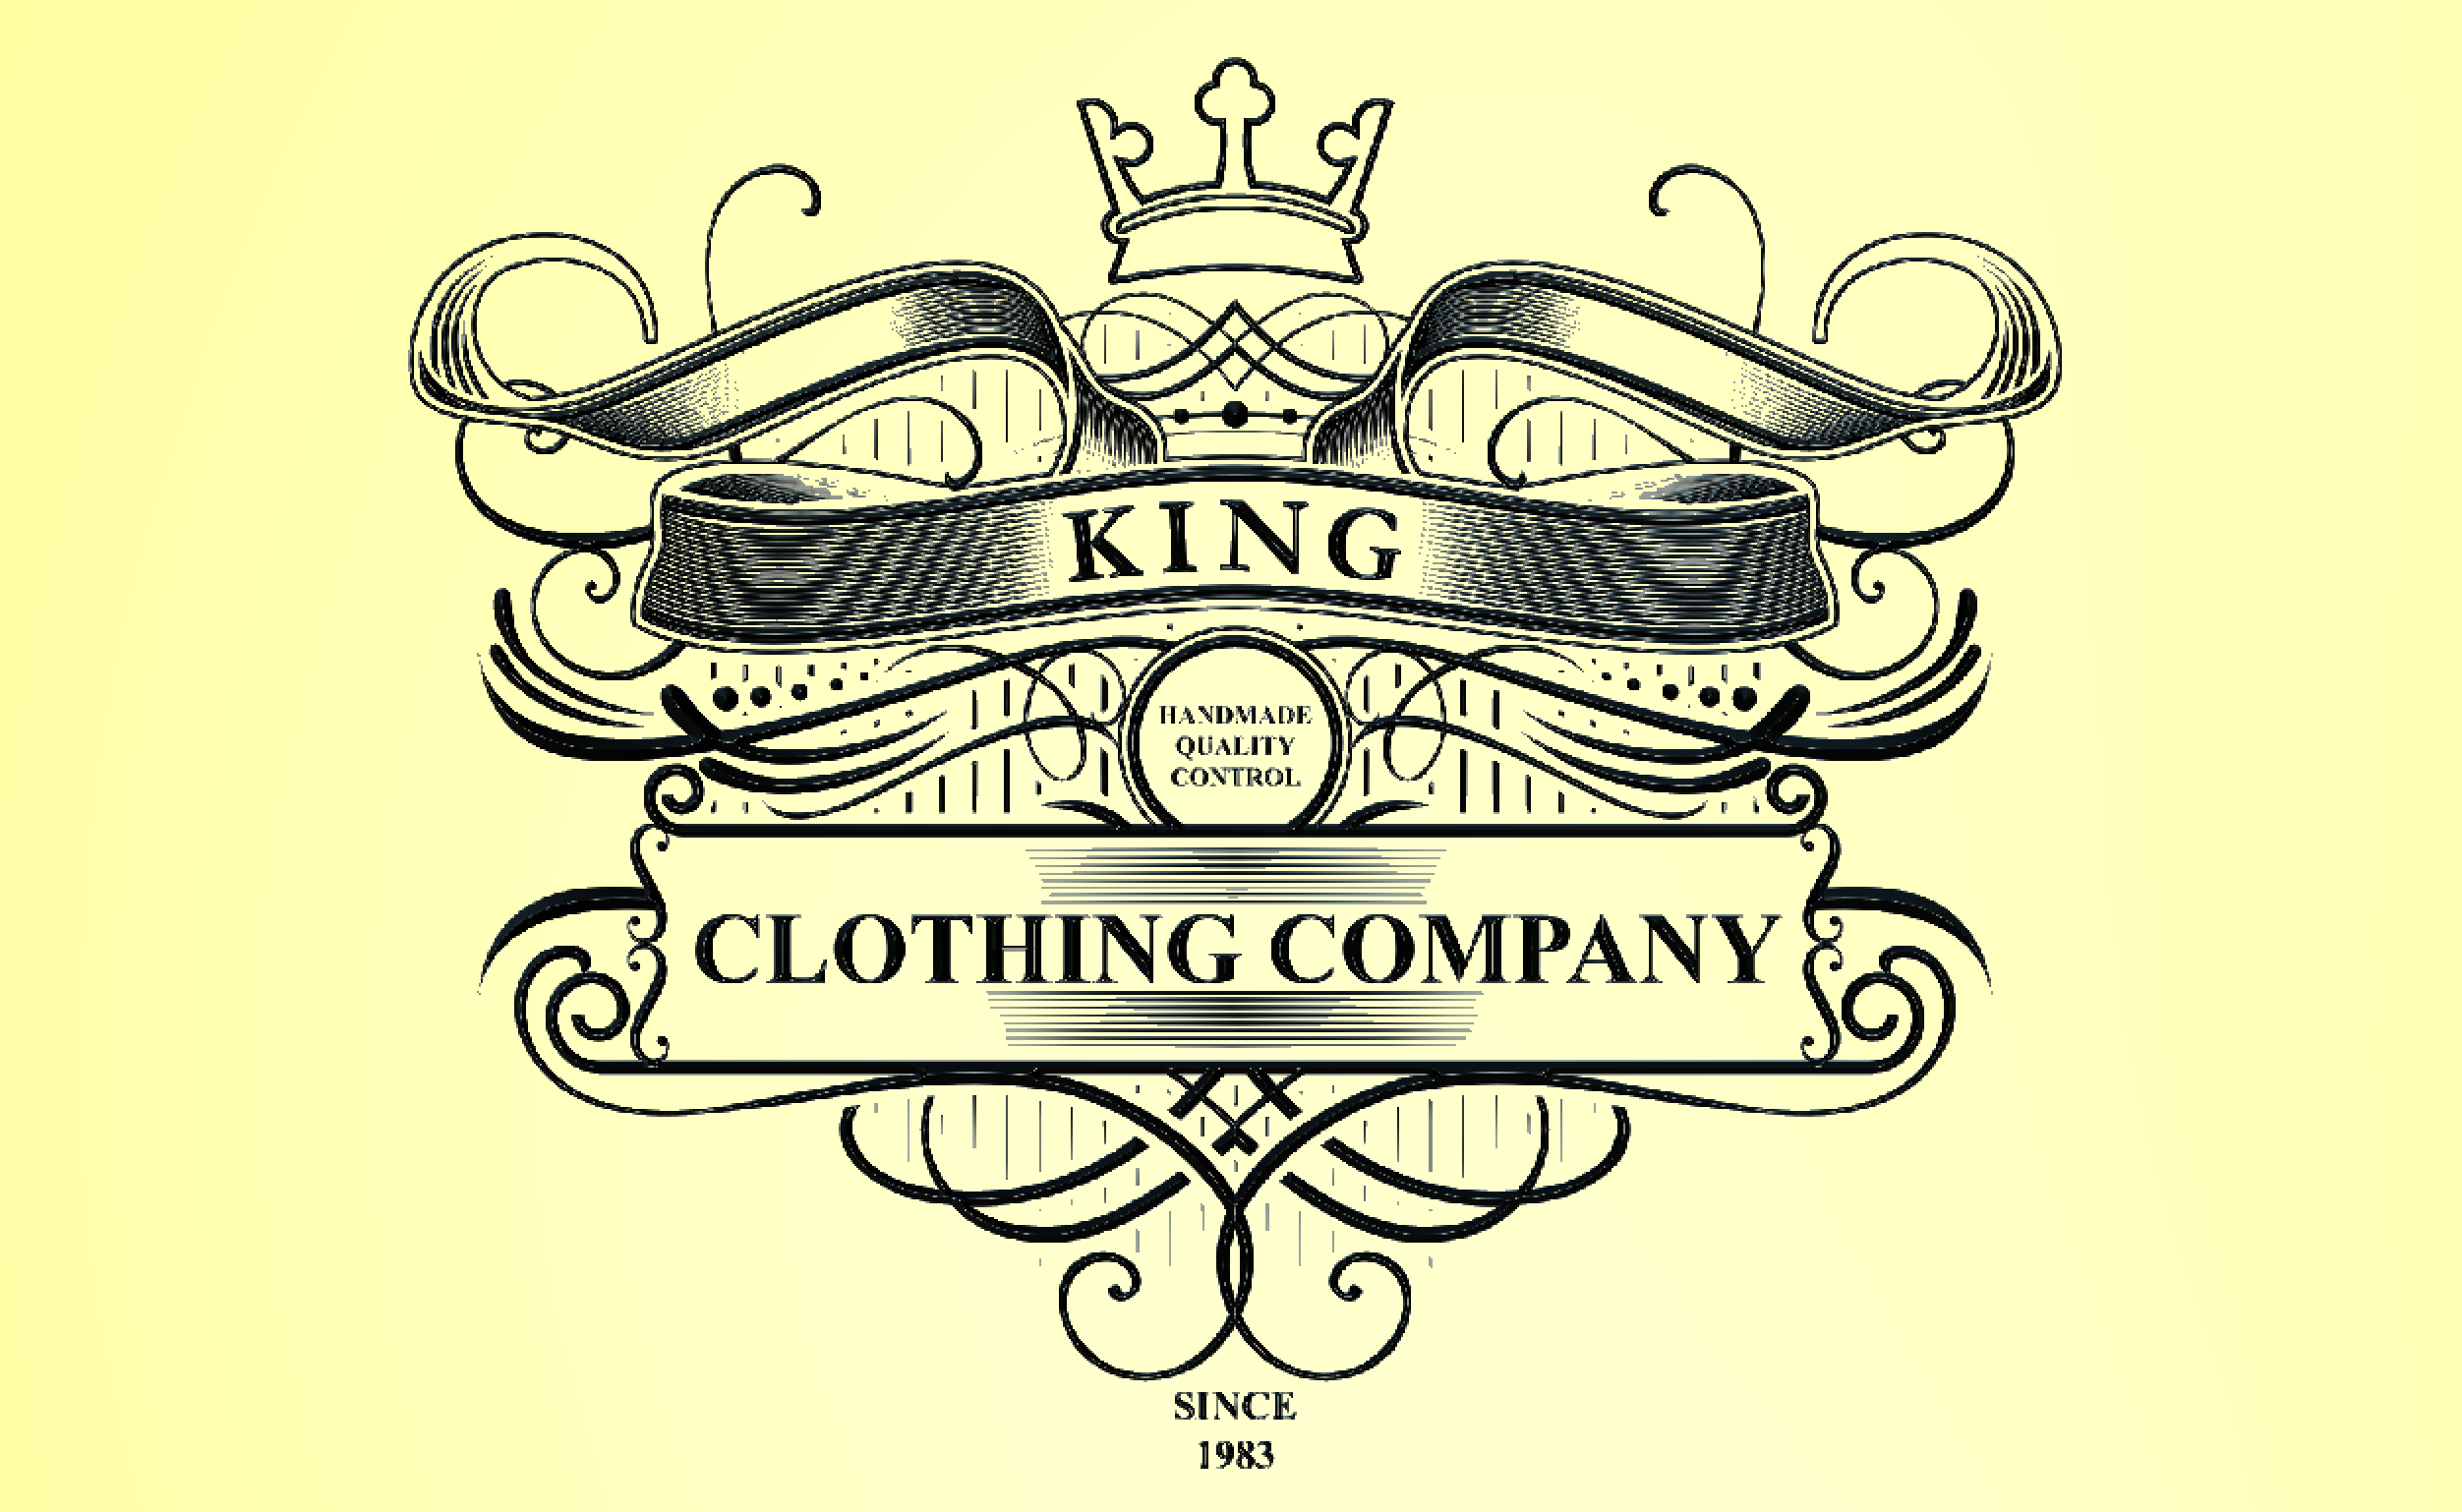 King Clothing Company Engraved plate